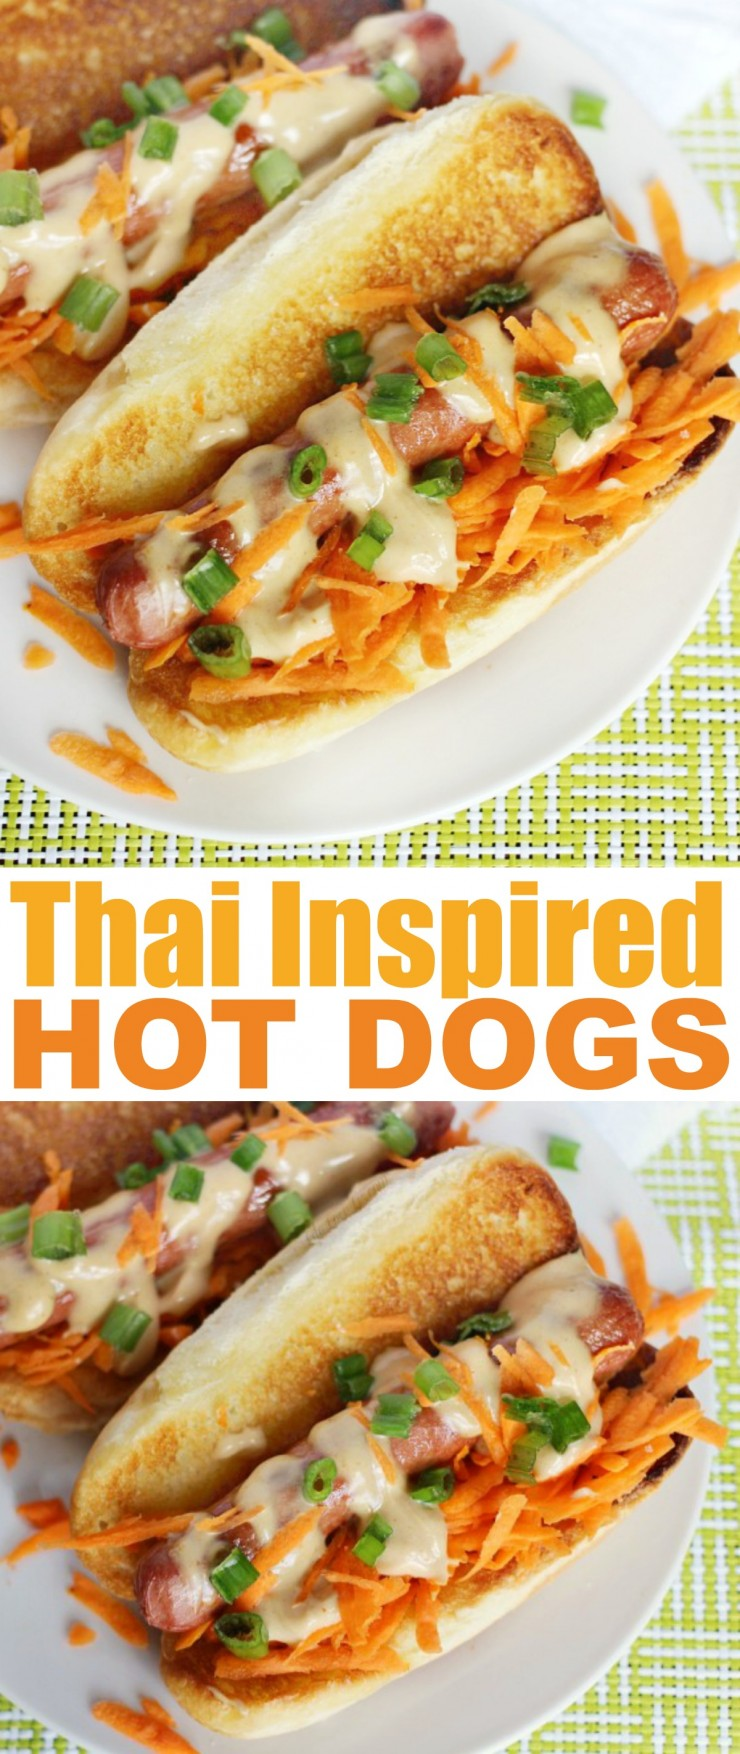 Thai Inspired Hot Dogs are an easy and gourmet hot dog lunch idea everyone will love!